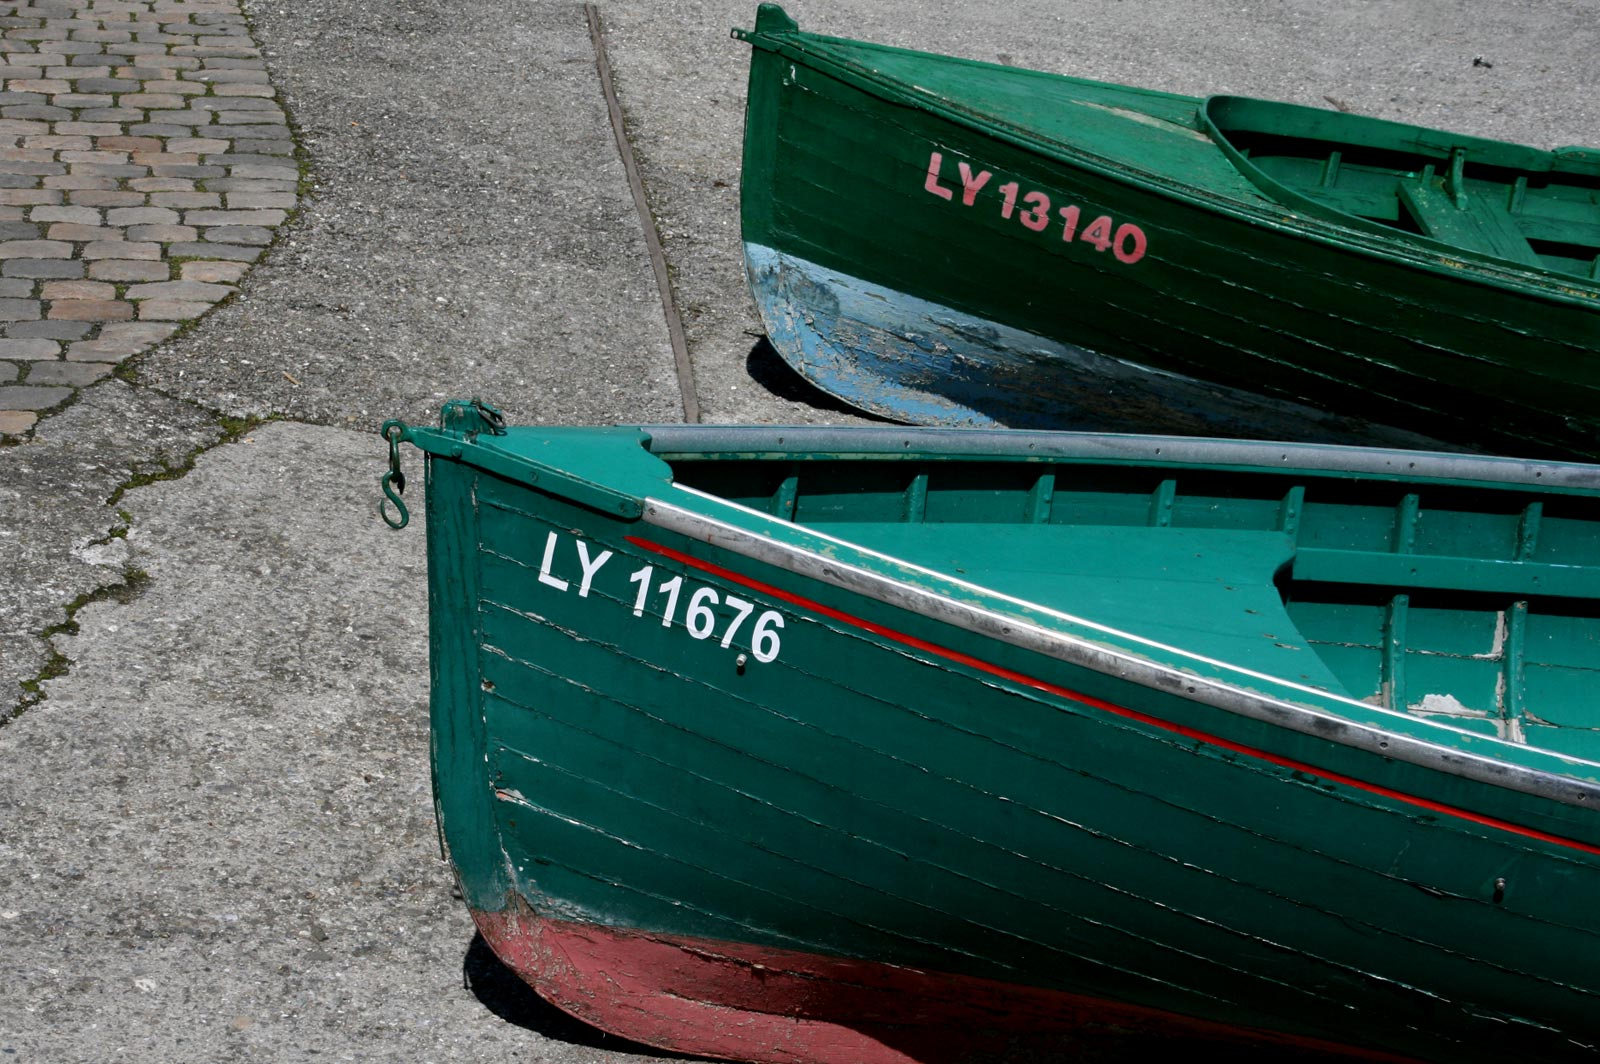 The fishermen's boats in the port of Yvoire.